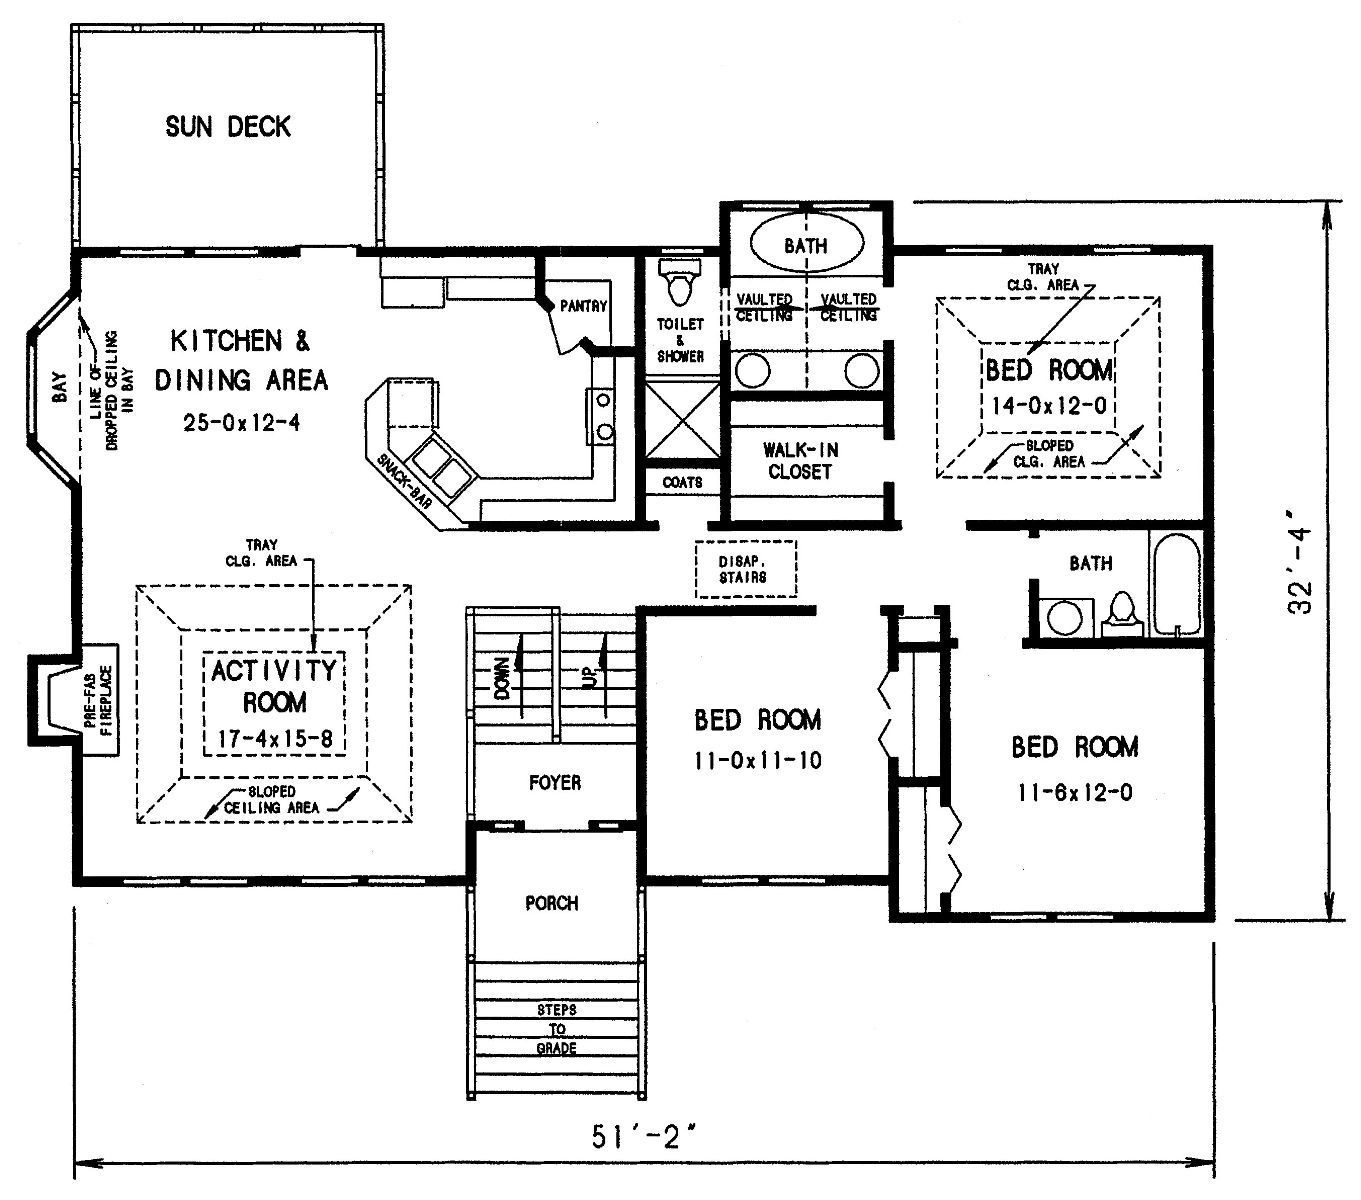 House plans designs split level house plans uk kerala for Split floor plans